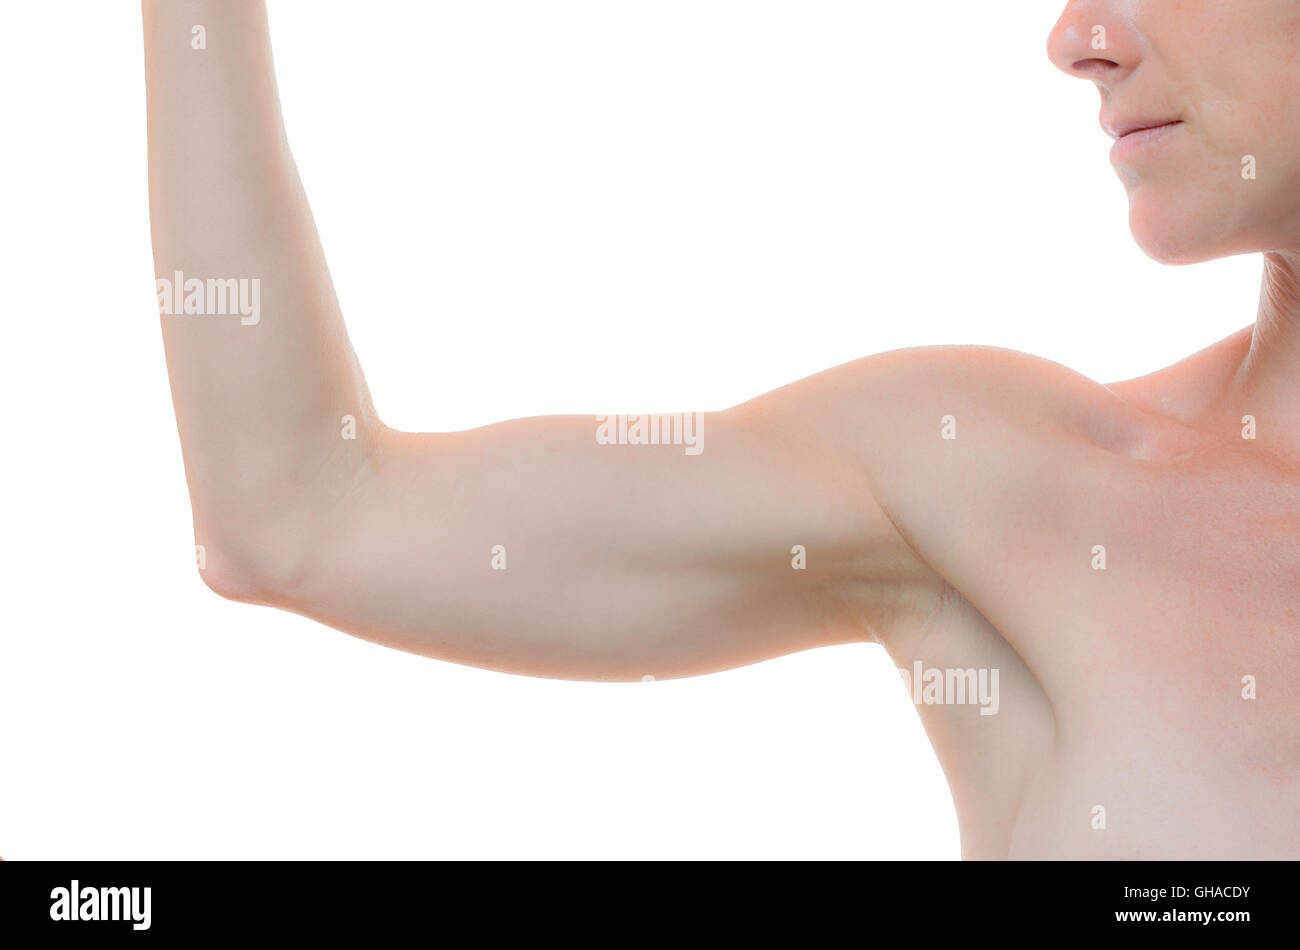 Bare shoulder and arm bent at the elbow of one woman against a white background - Stock Image